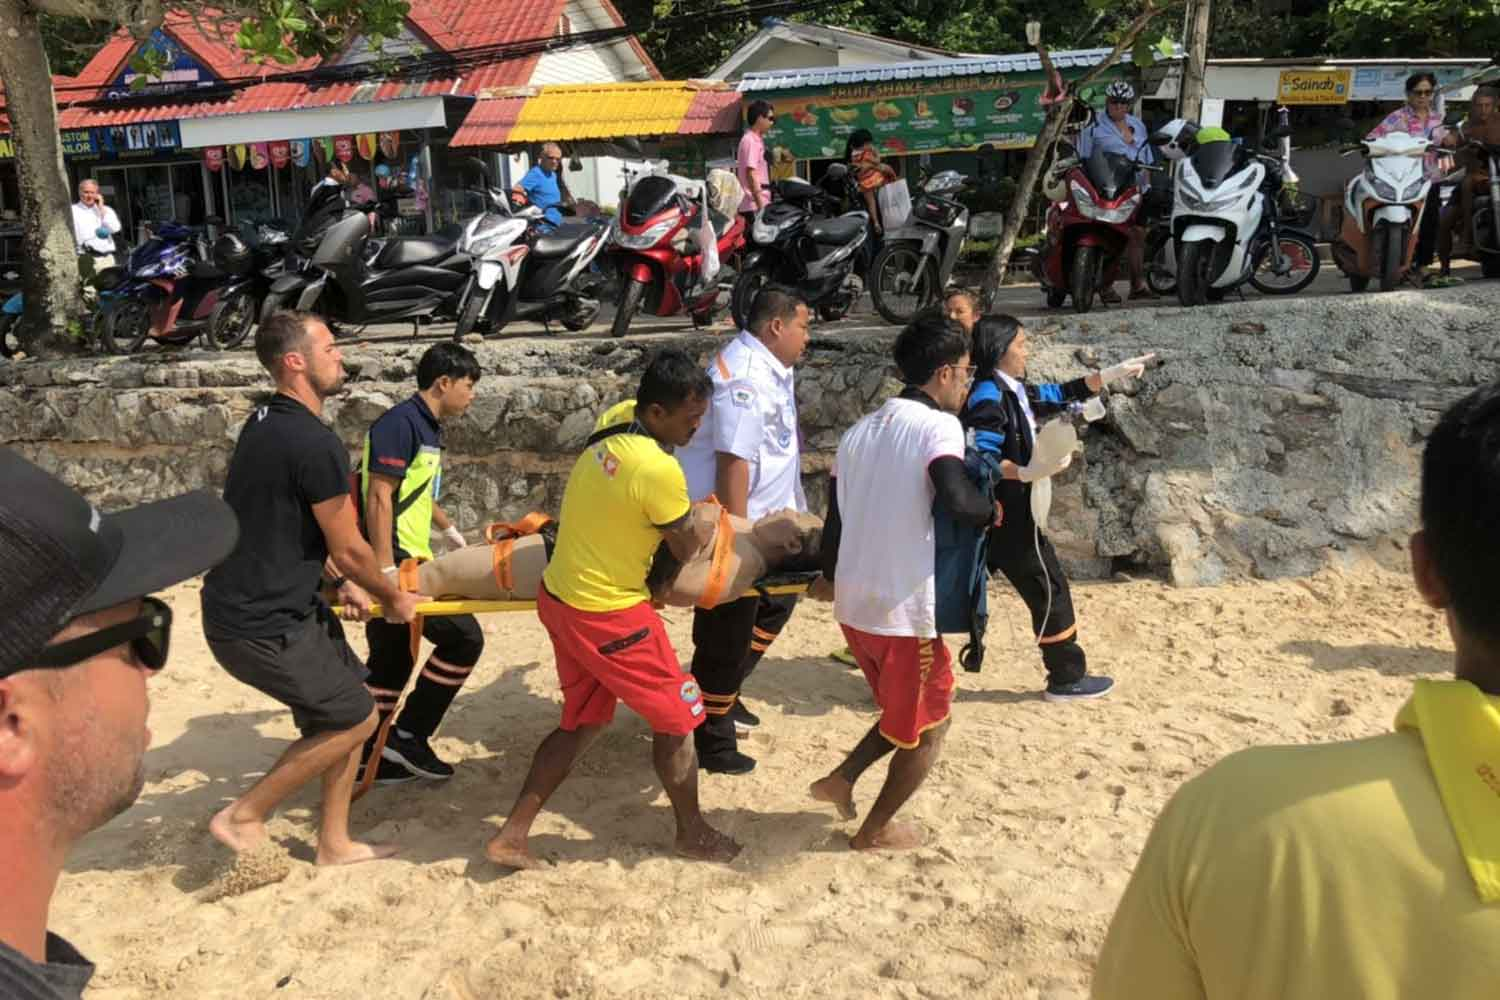 Chinese tourist Dong Xuyan is rushed to a hospital after being rescued from the sea off Nai Harn Beach in Phuket on Tuesday morning. (Photo by Achadtaya Chuenniran)